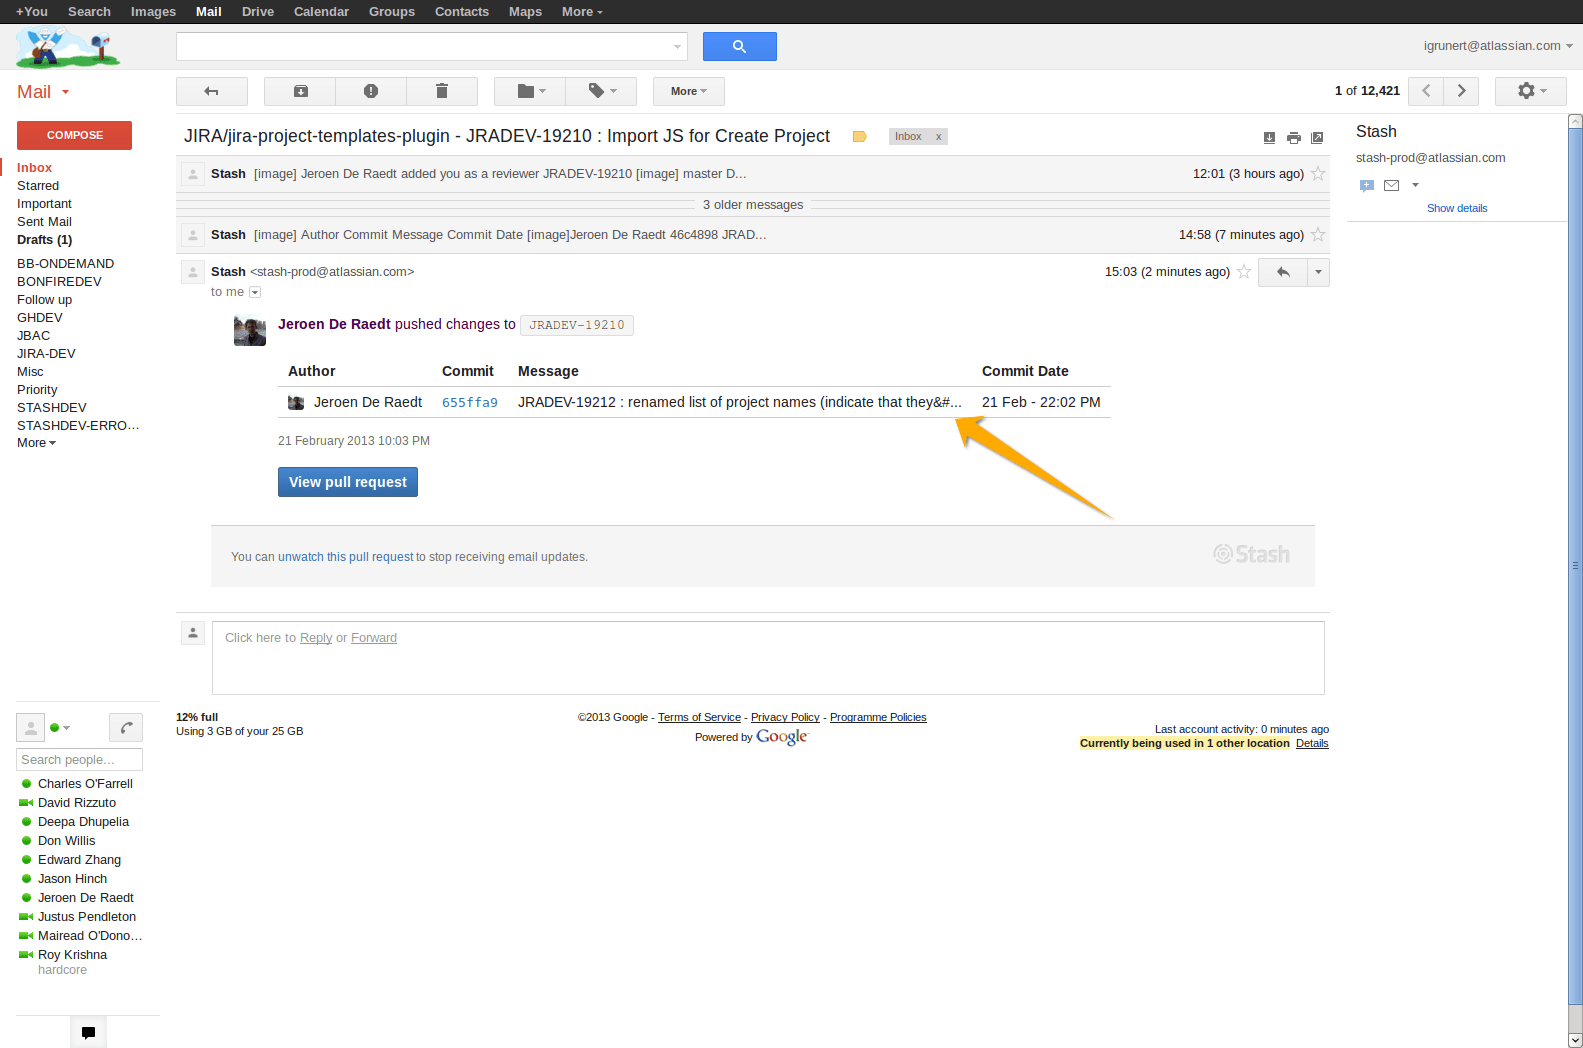 [BSERV-3158] Apostrophes in commit messages not rendered correctly in pull request emails